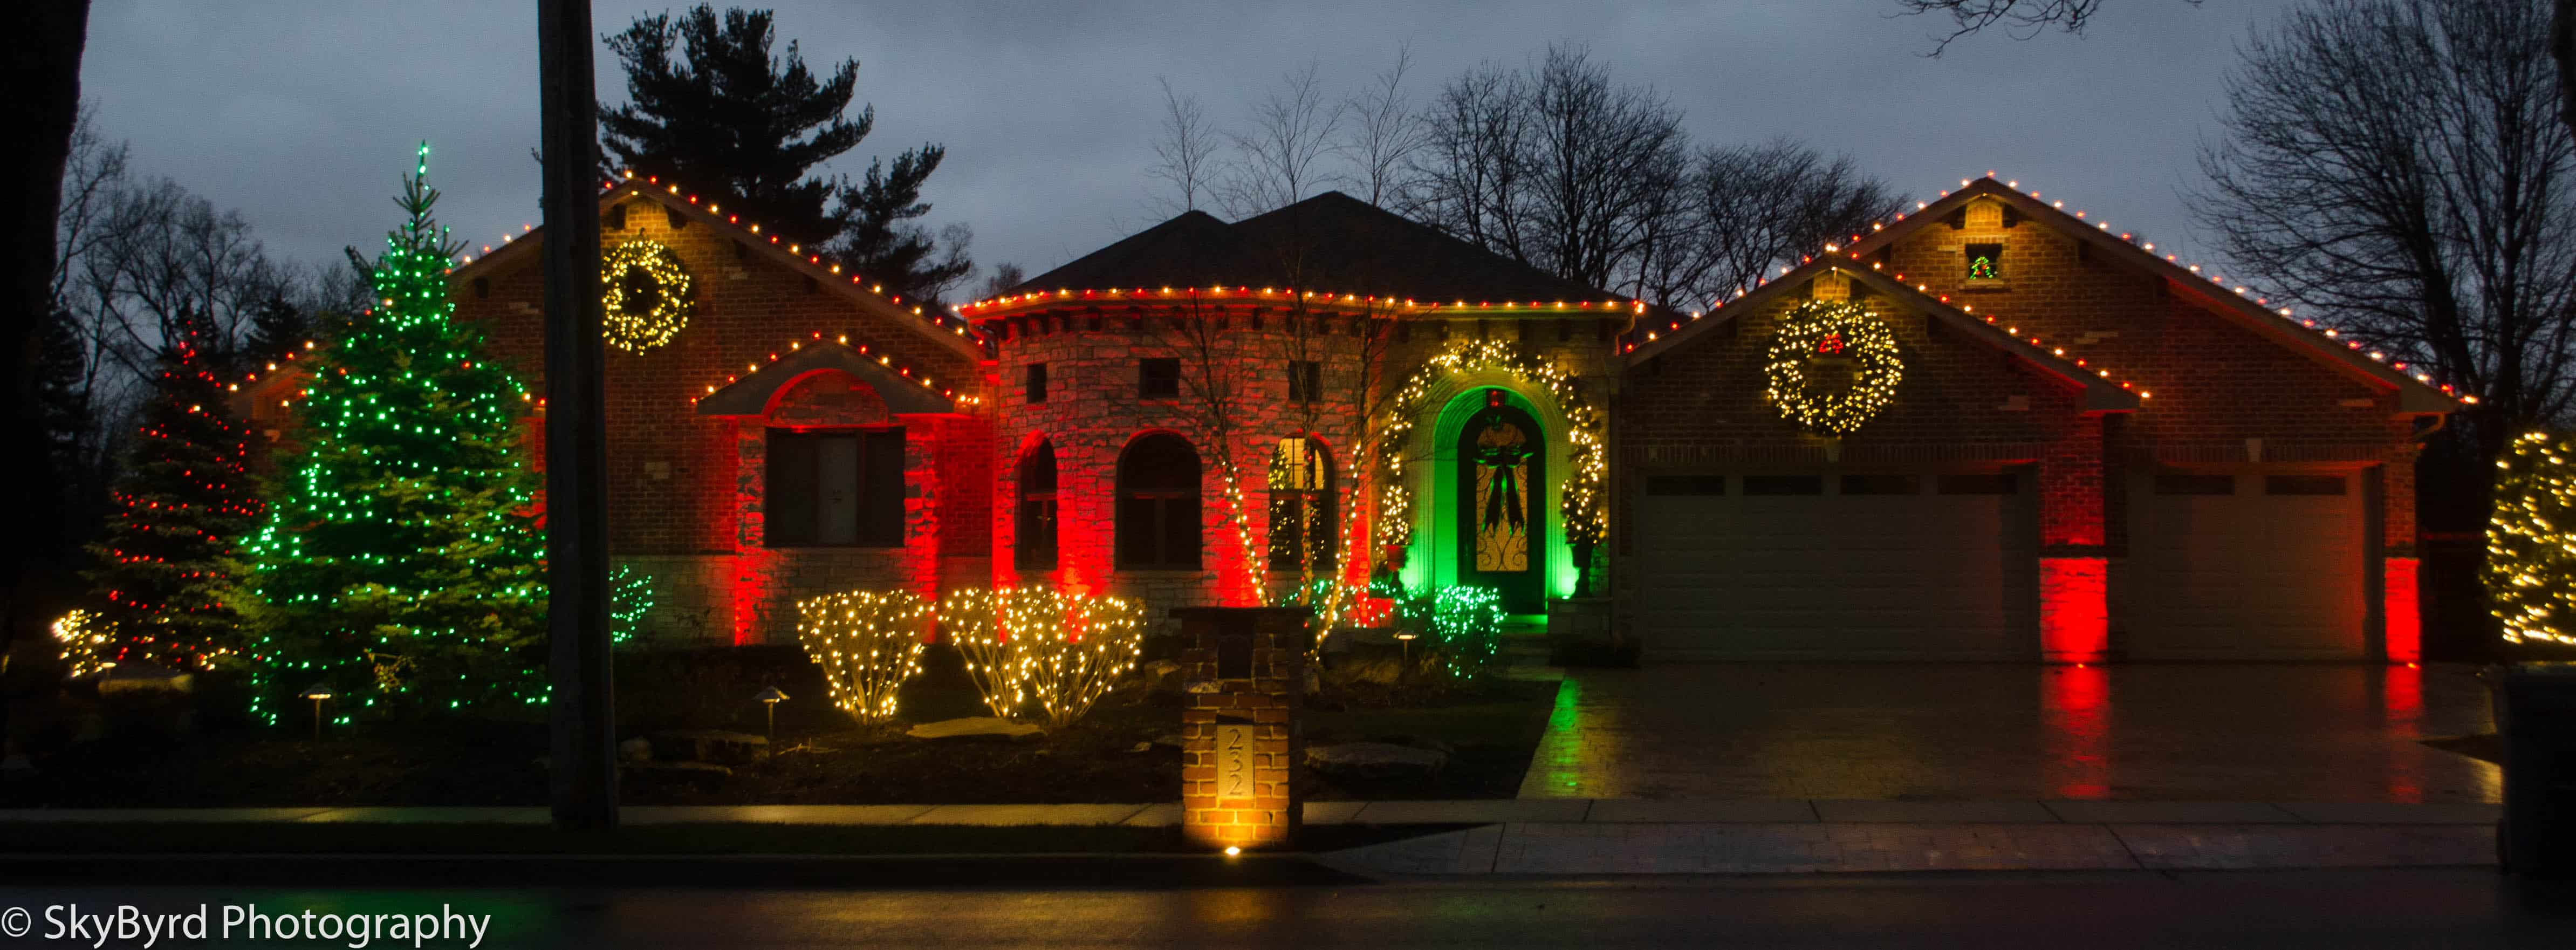 Dsc 3 Outdoor Lighting In Chicago Il Accents